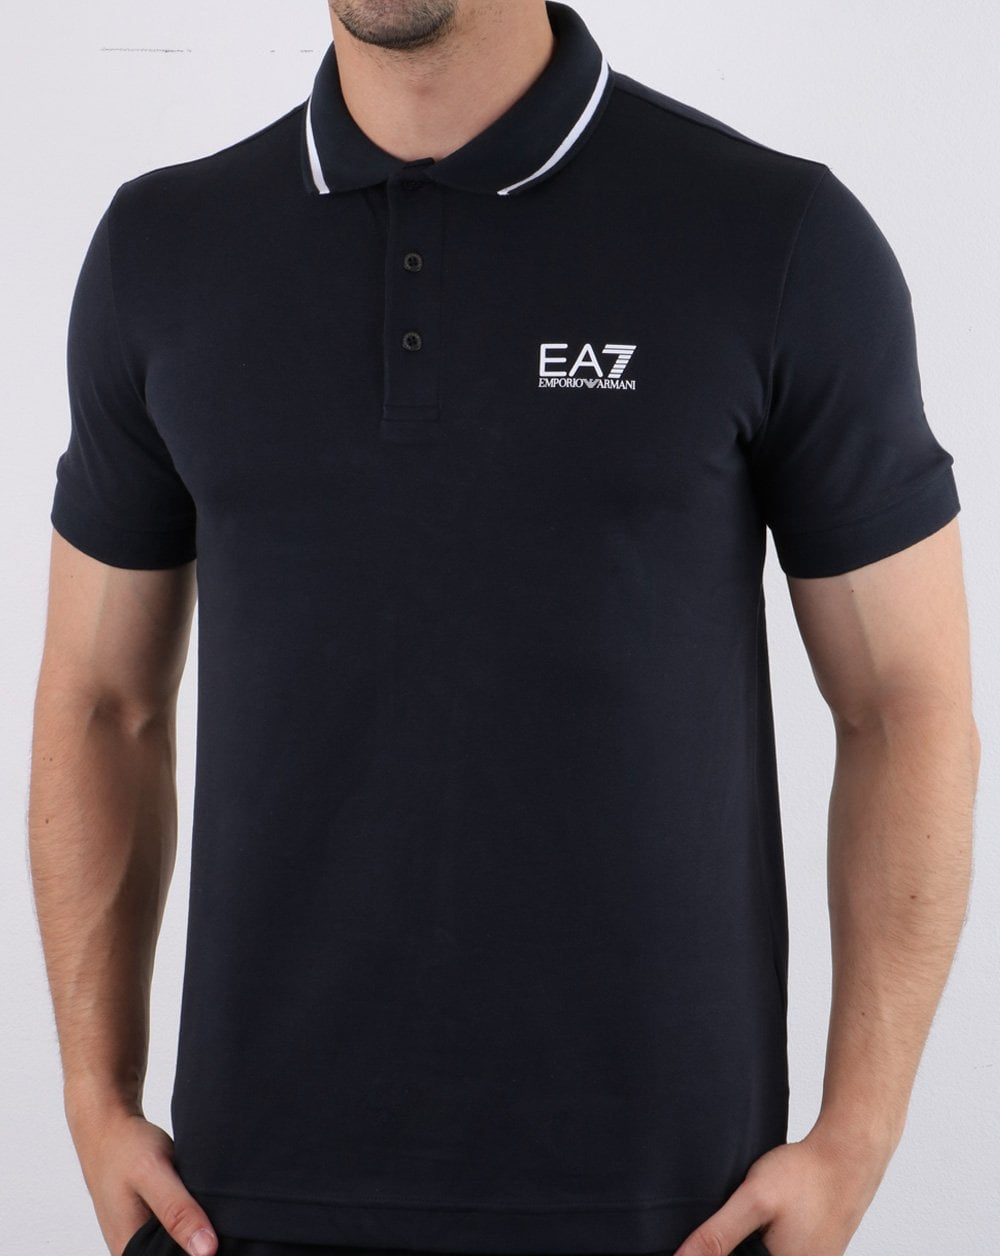 6961df95d5 Emporio Armani EA7 Polo Shirt Night Blue